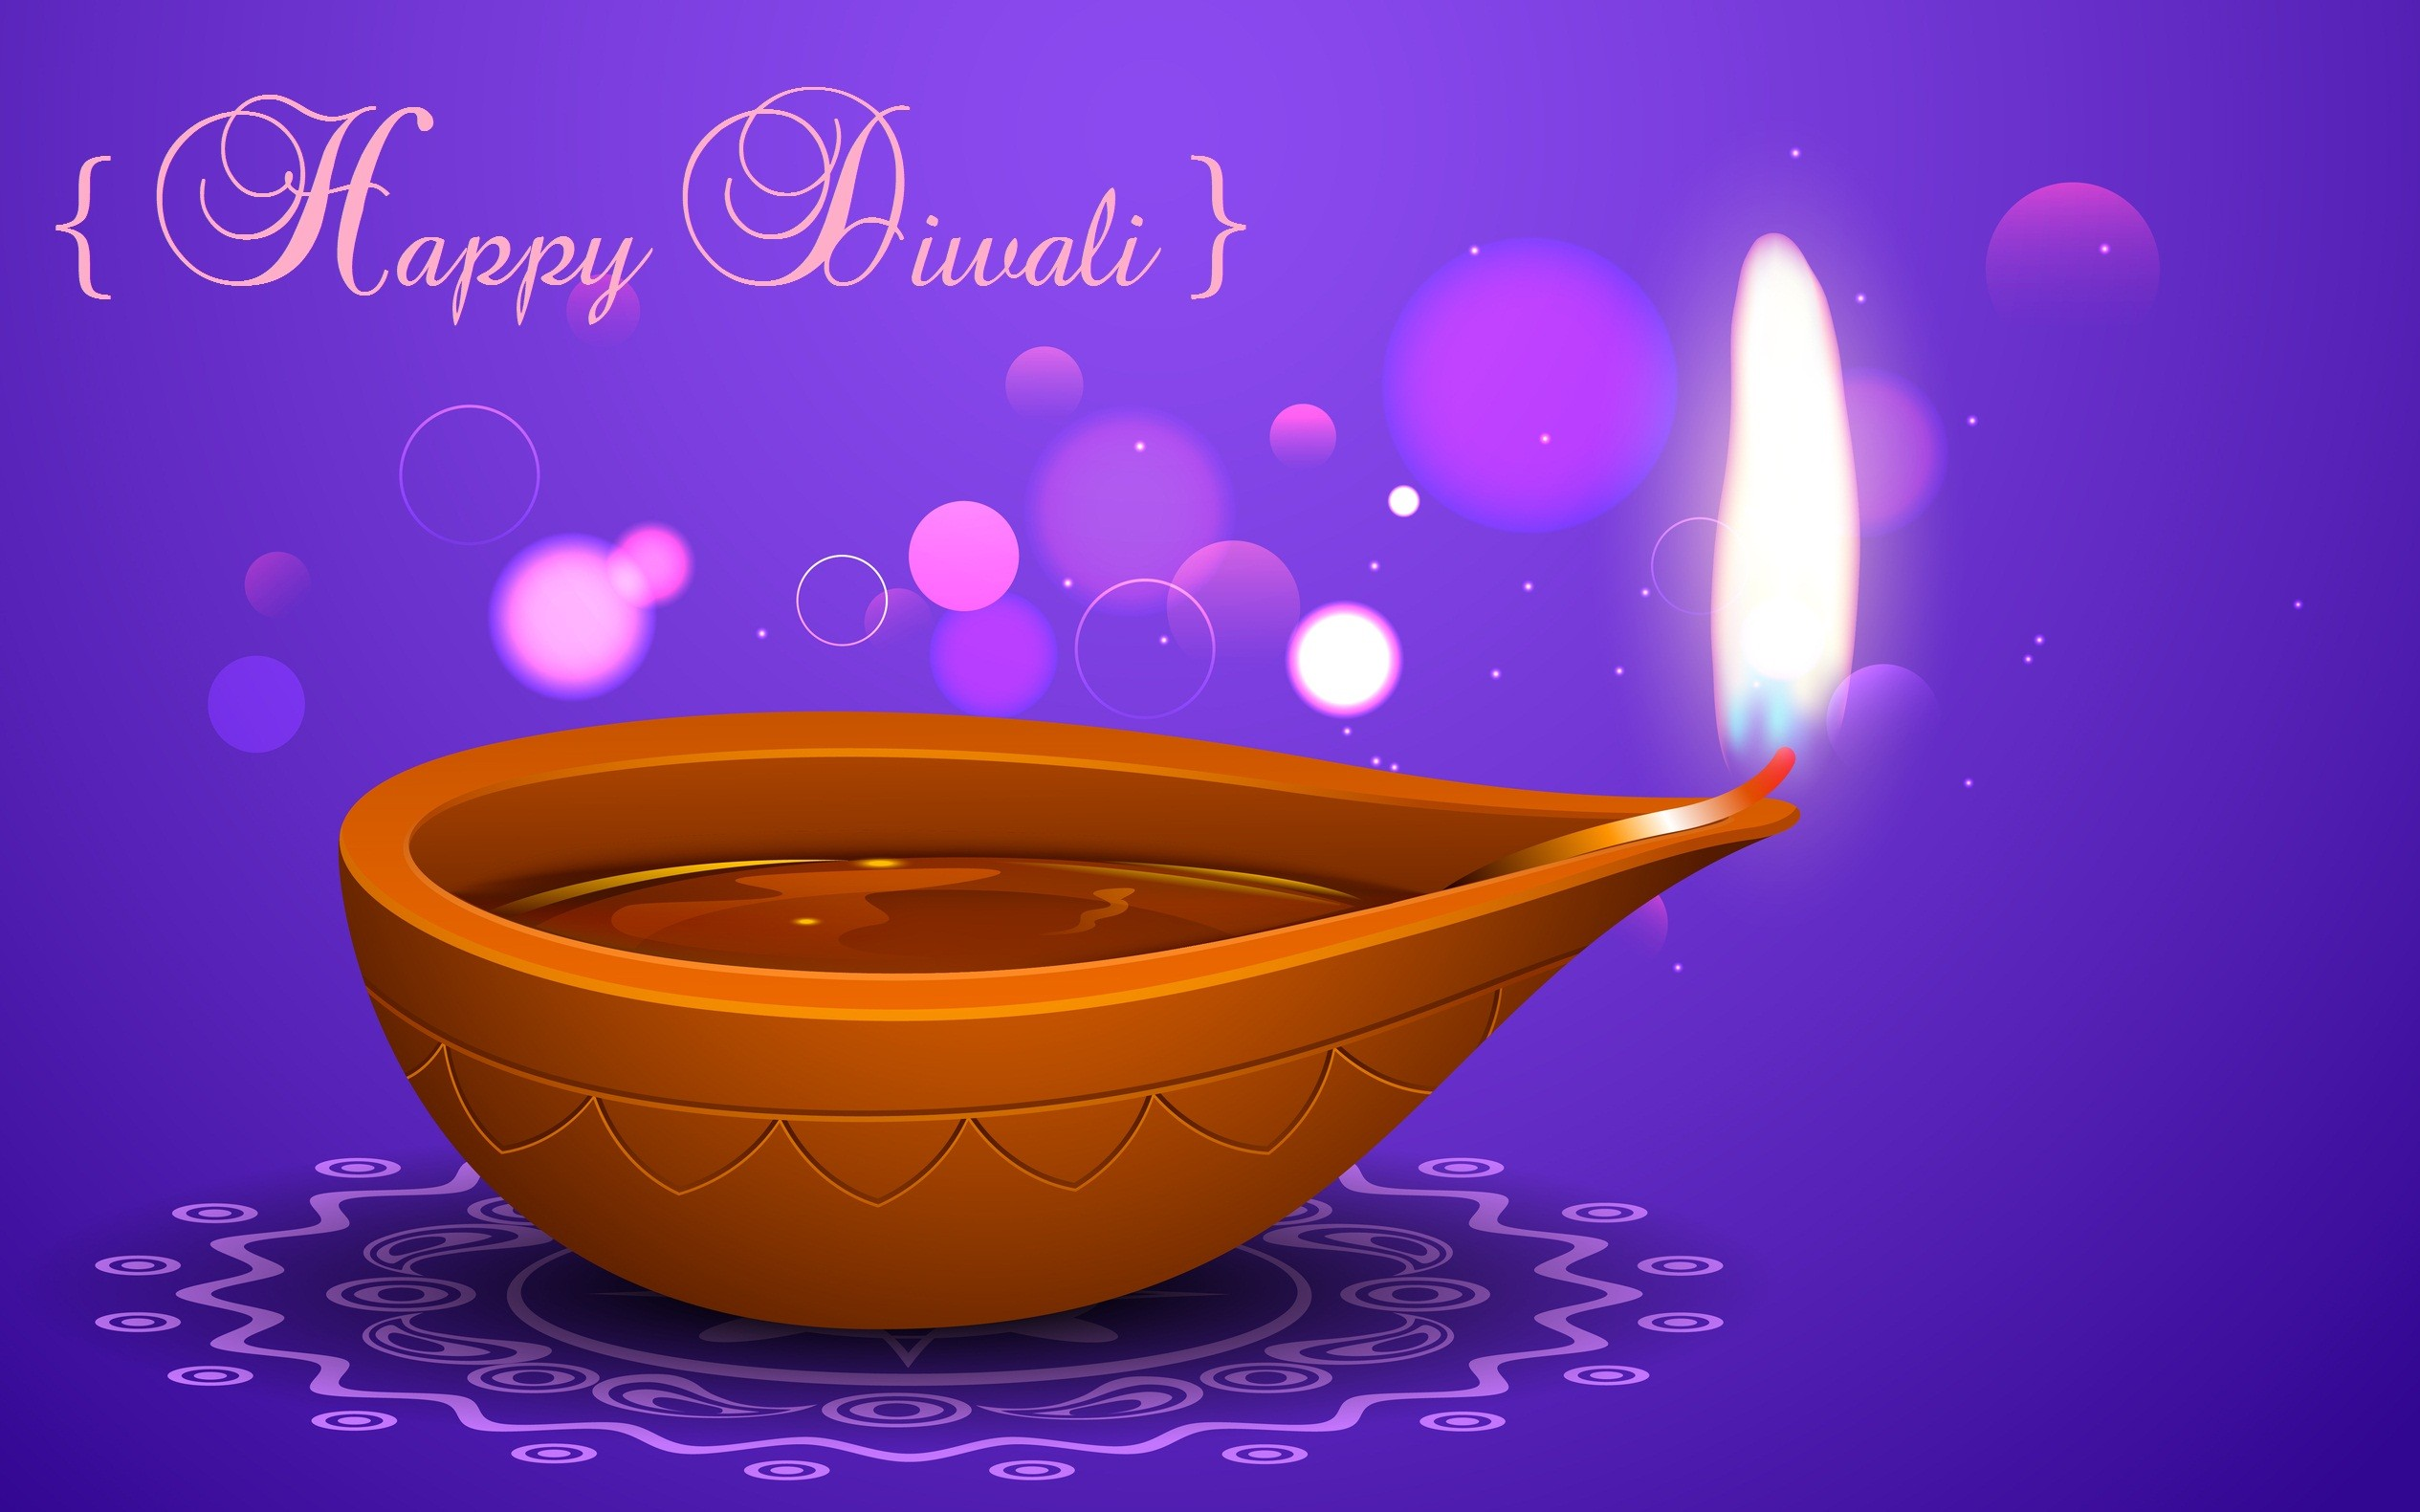 Diwali Diya HD Images For WhatsApp